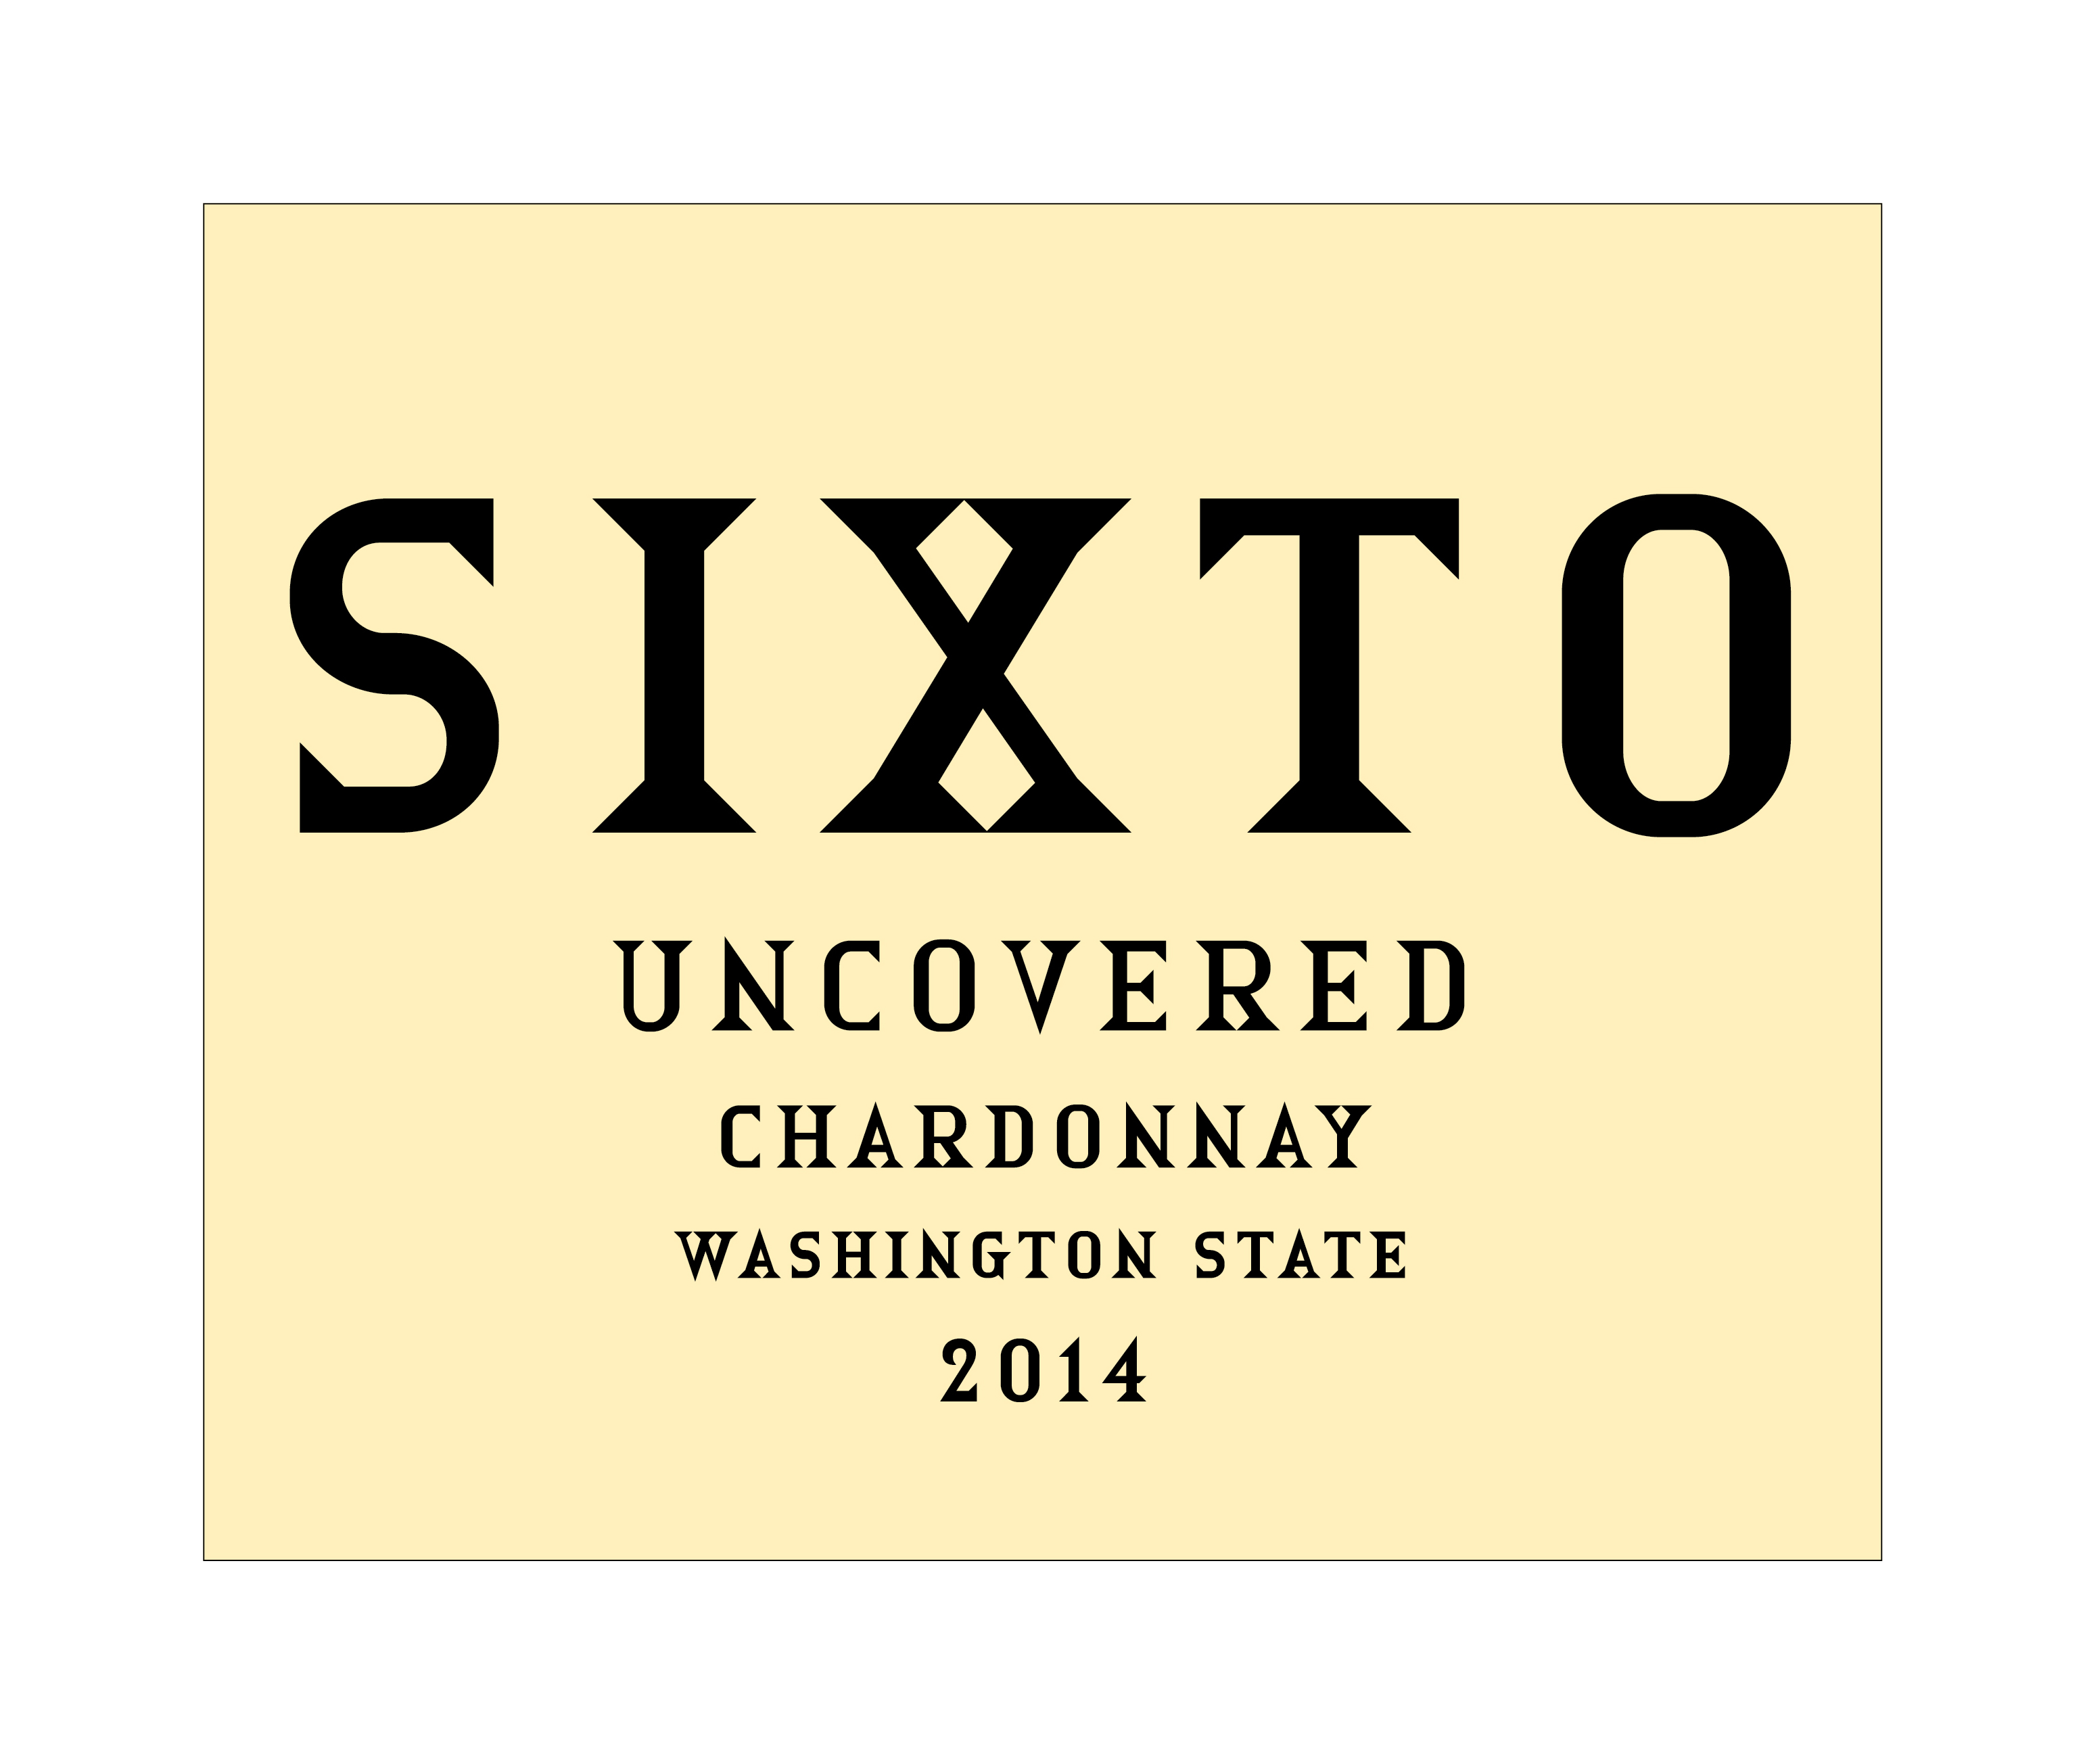 2014 Sixto Chardonnay Uncovered